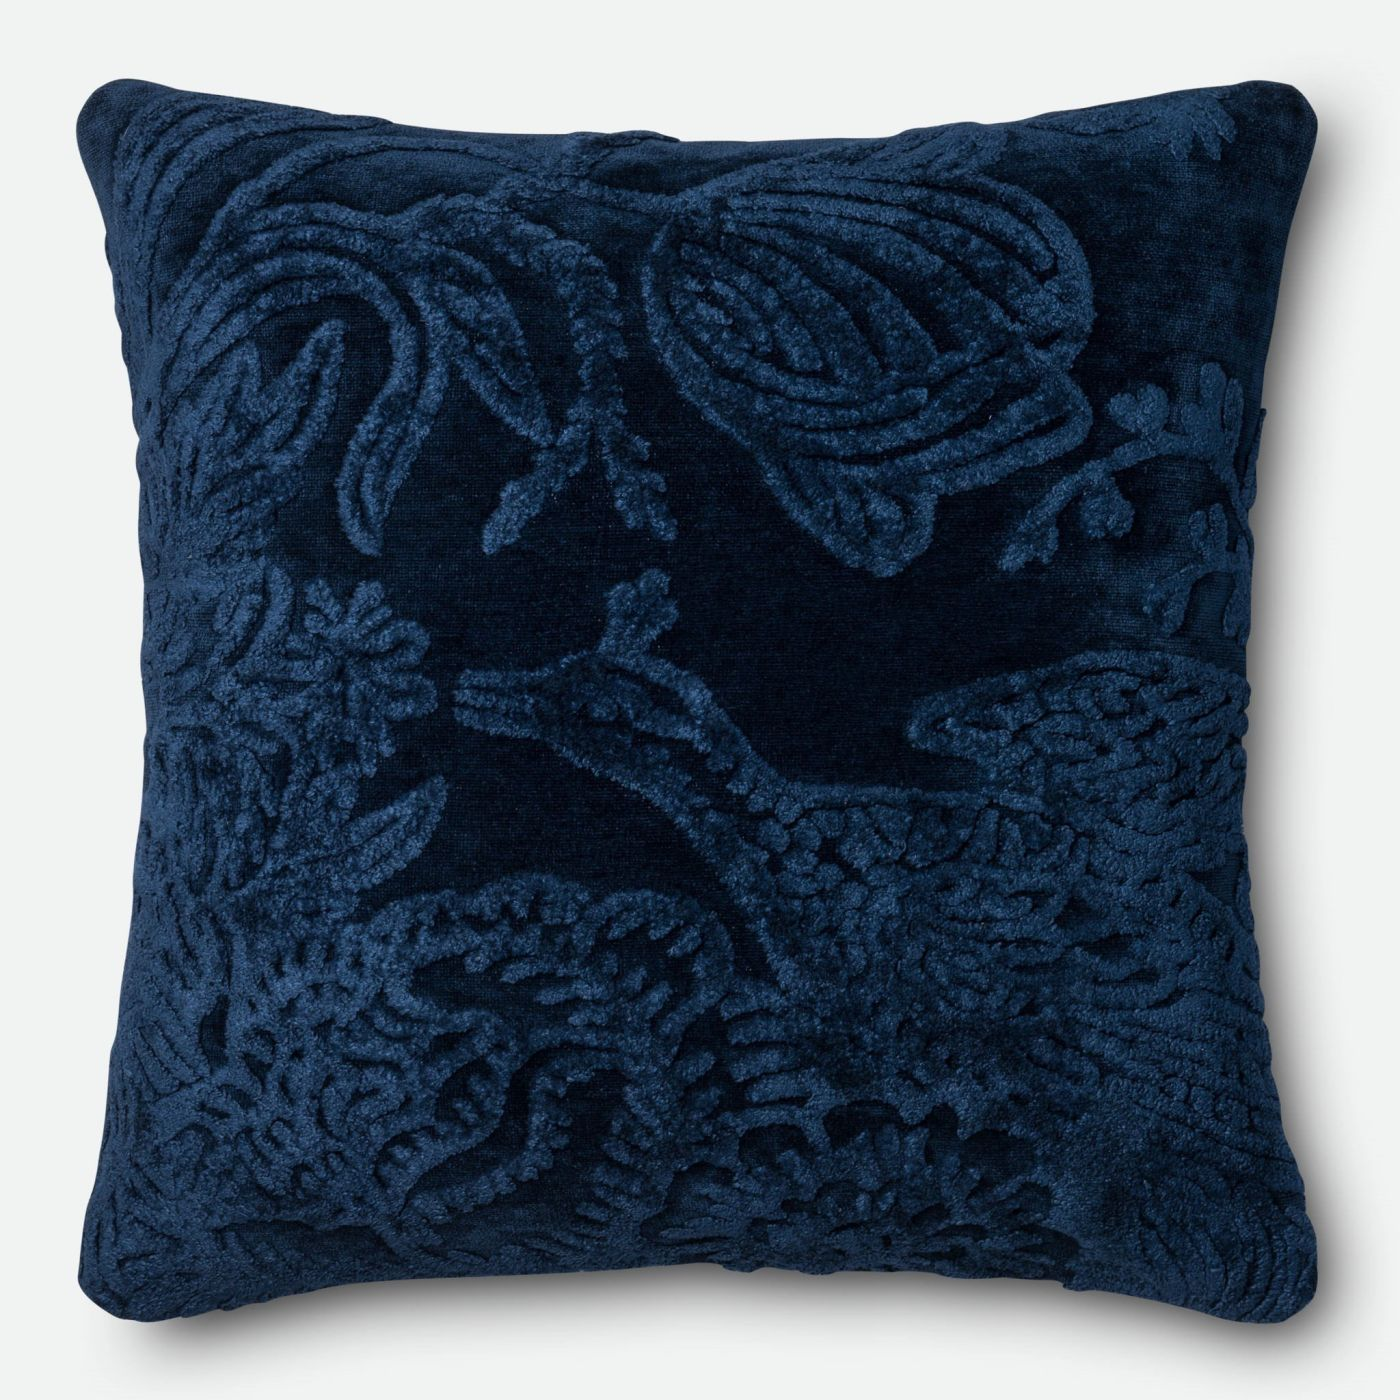 Throw Pillow Warehouse : Loloi Rugs Loloi Indigo Decorative Throw Pillow (GPI04) DSETGPI04IN00PIL9. Only $199.00 at ...